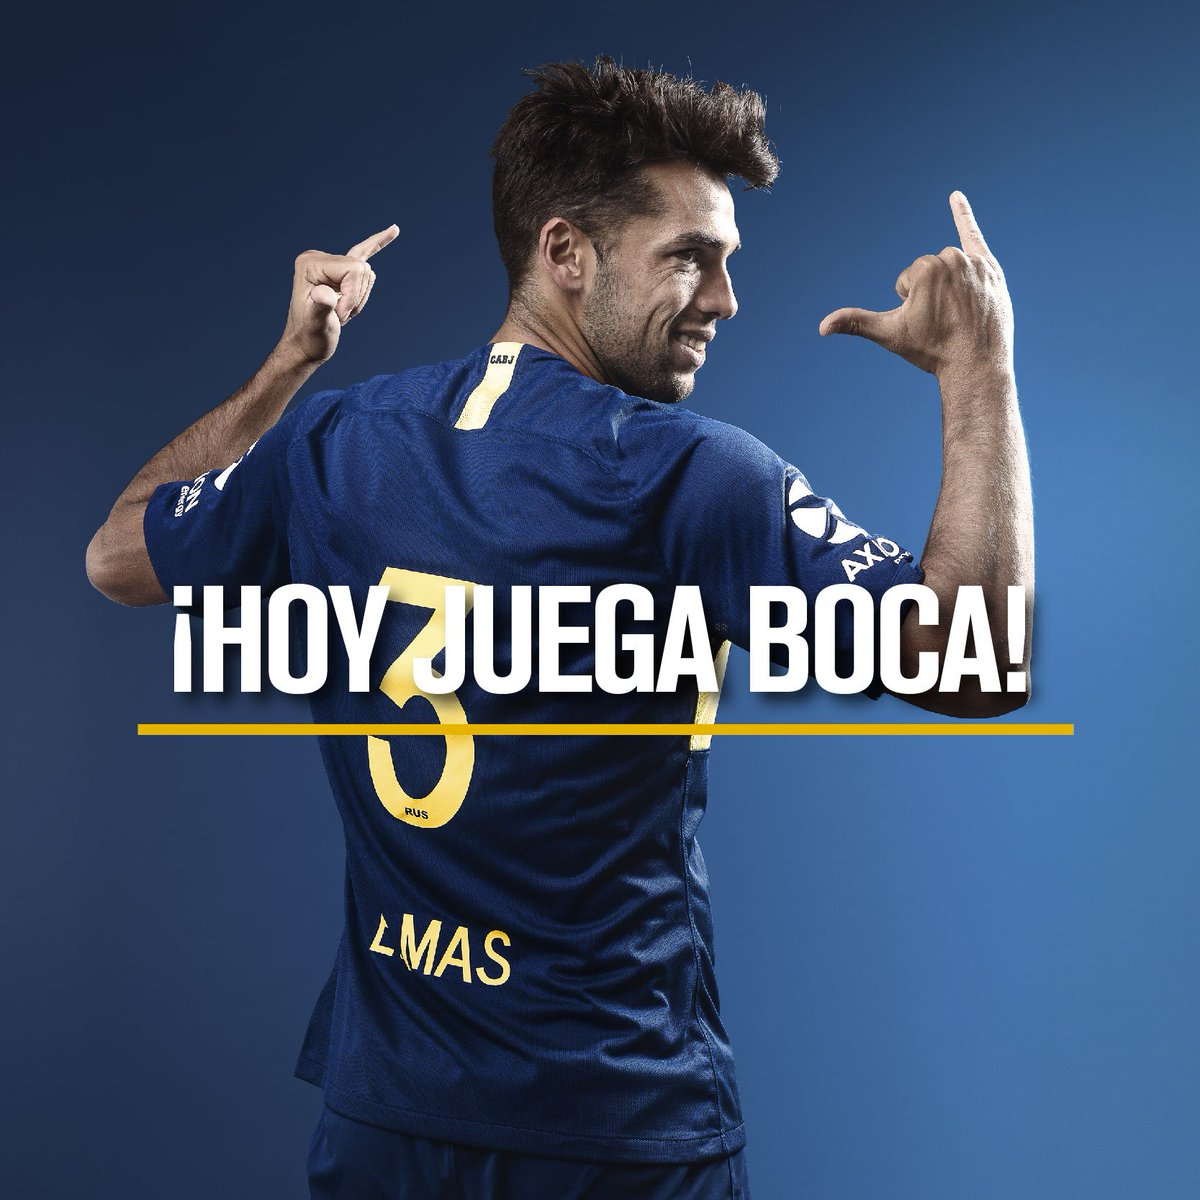 Boca Jrs. Oficial's photo on #HoyJuegaBoca